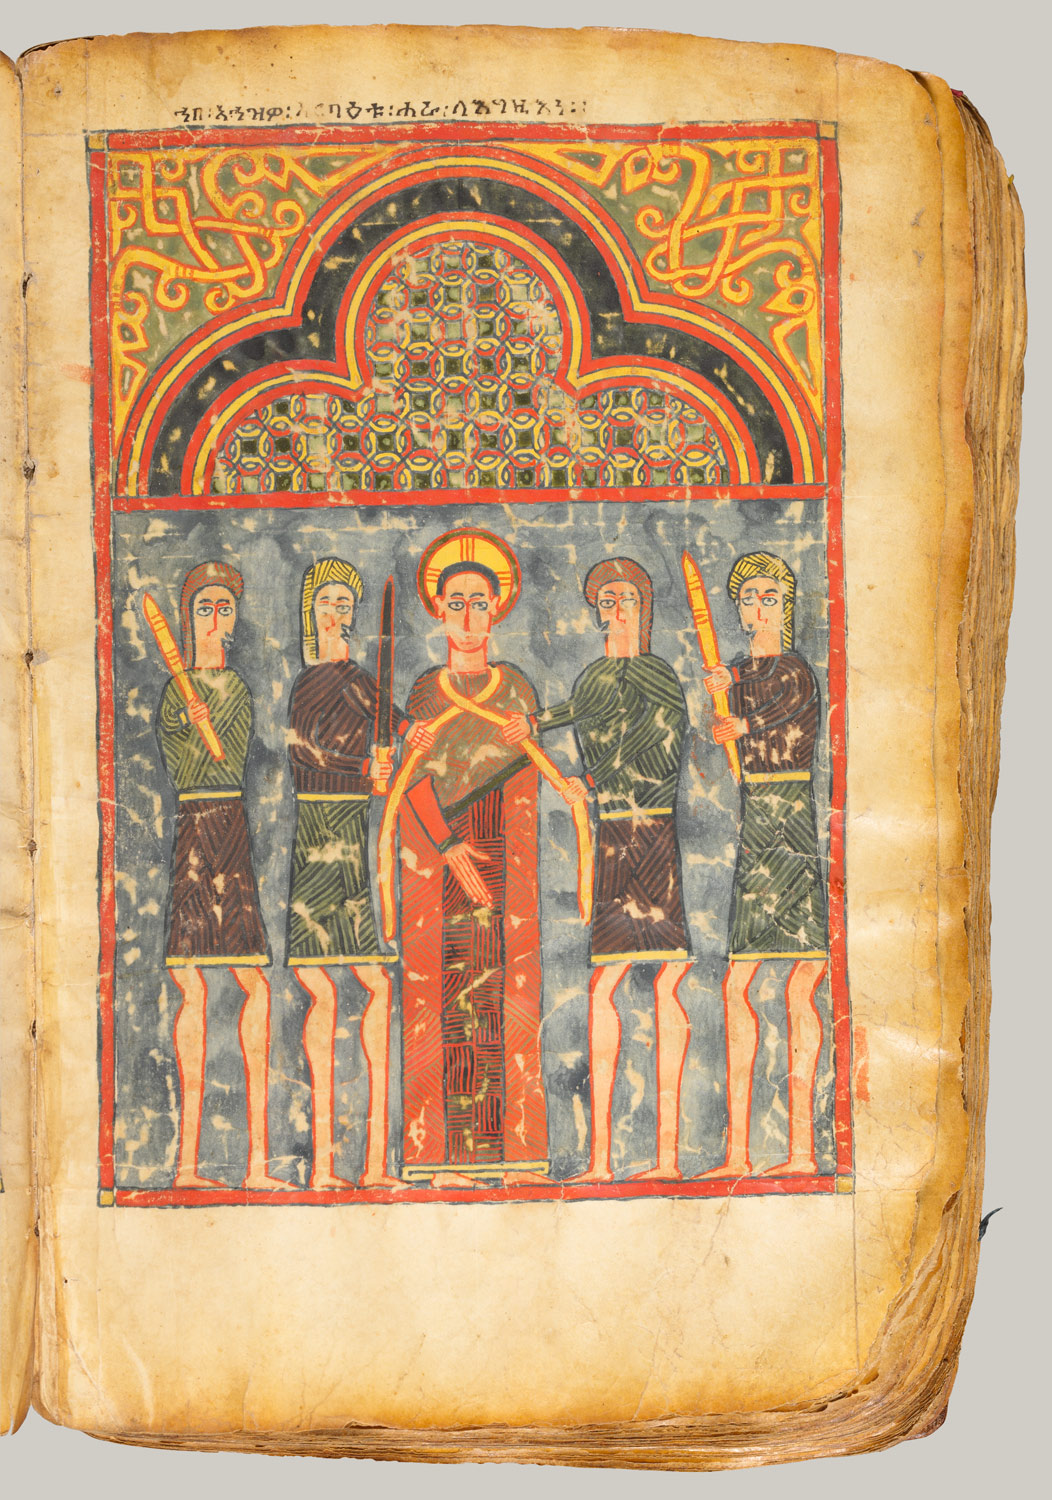 Page from an Illuminated Gospel